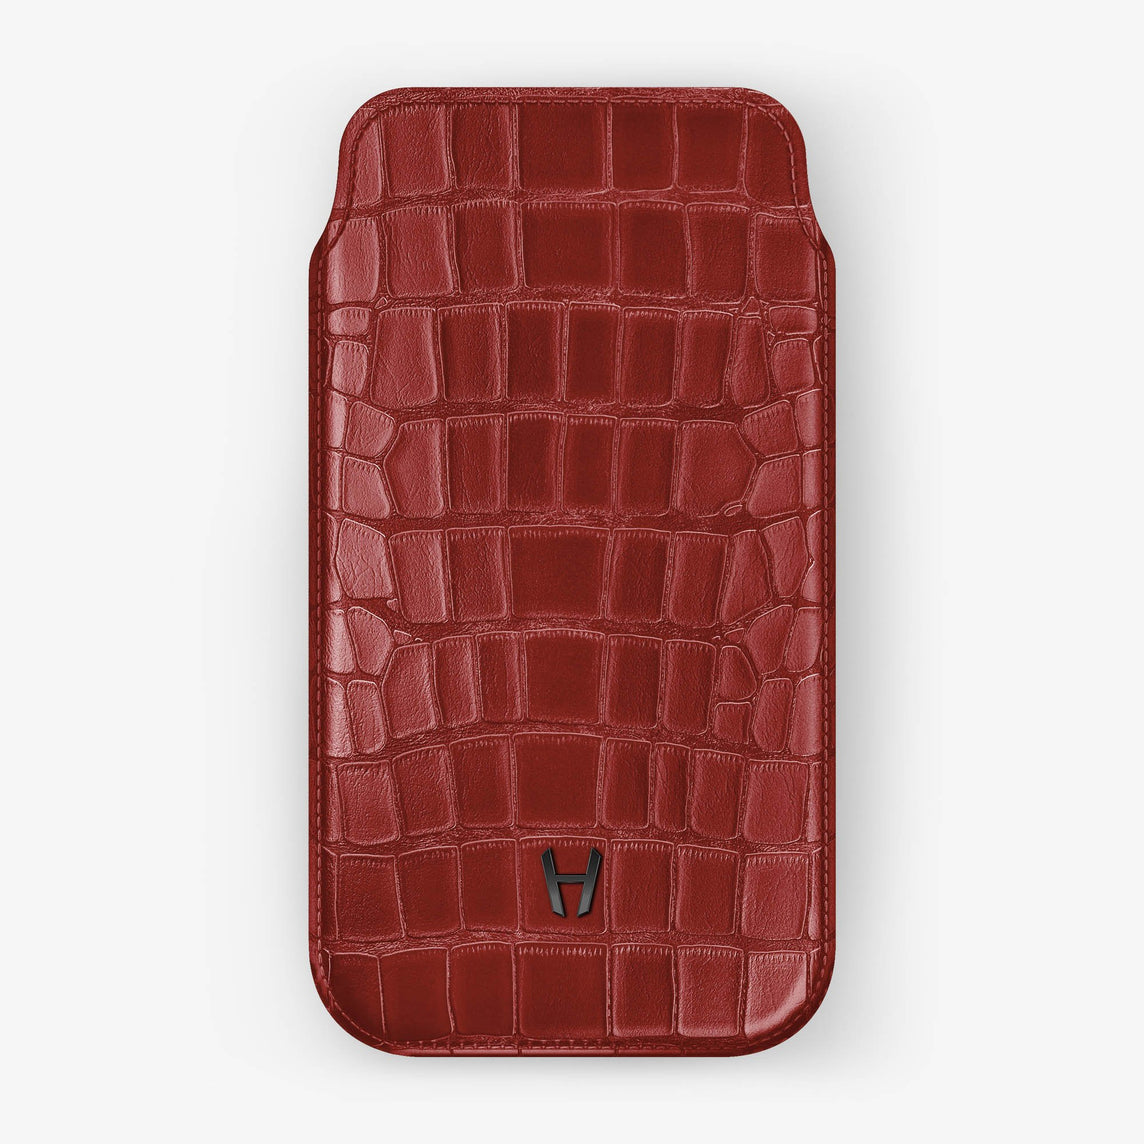 Alligator [iPhone Sleeve Case] [model:iphone-xsmax-case] [colour:red] [finishing:black]